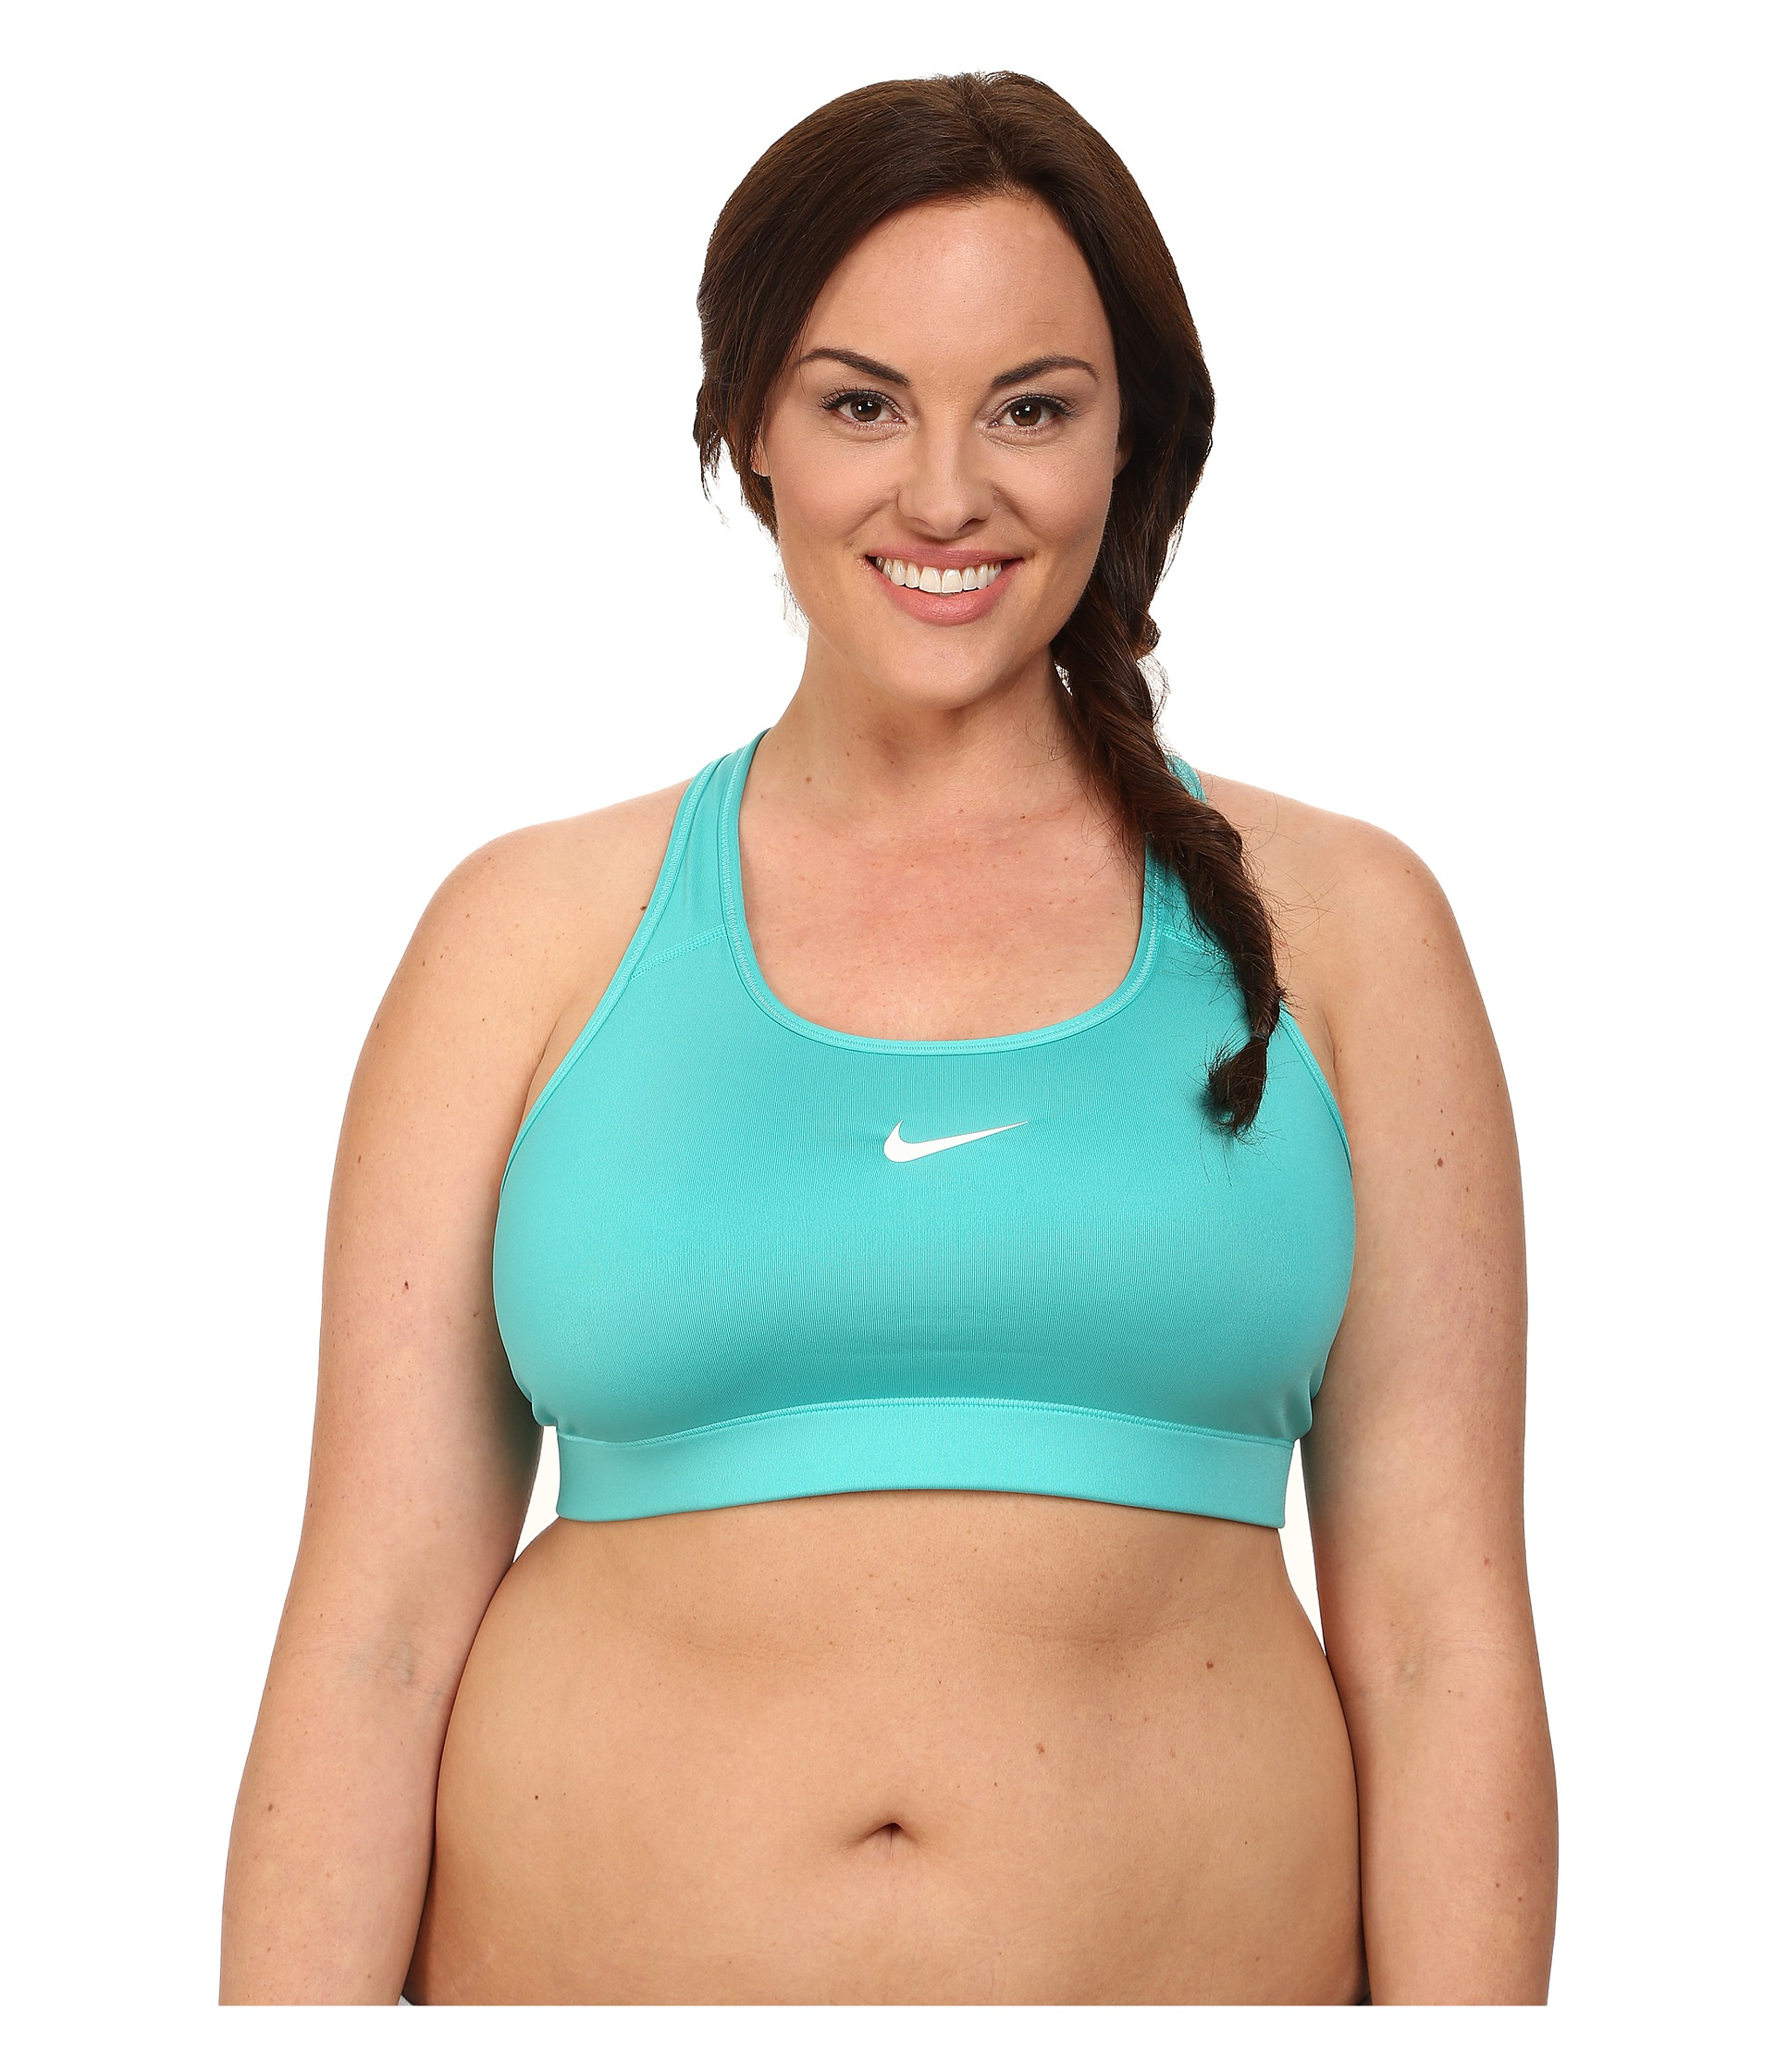 d916c5df1bbd6 Lyst - Nike Pro Victory Compression Sports Bra Extended in Green